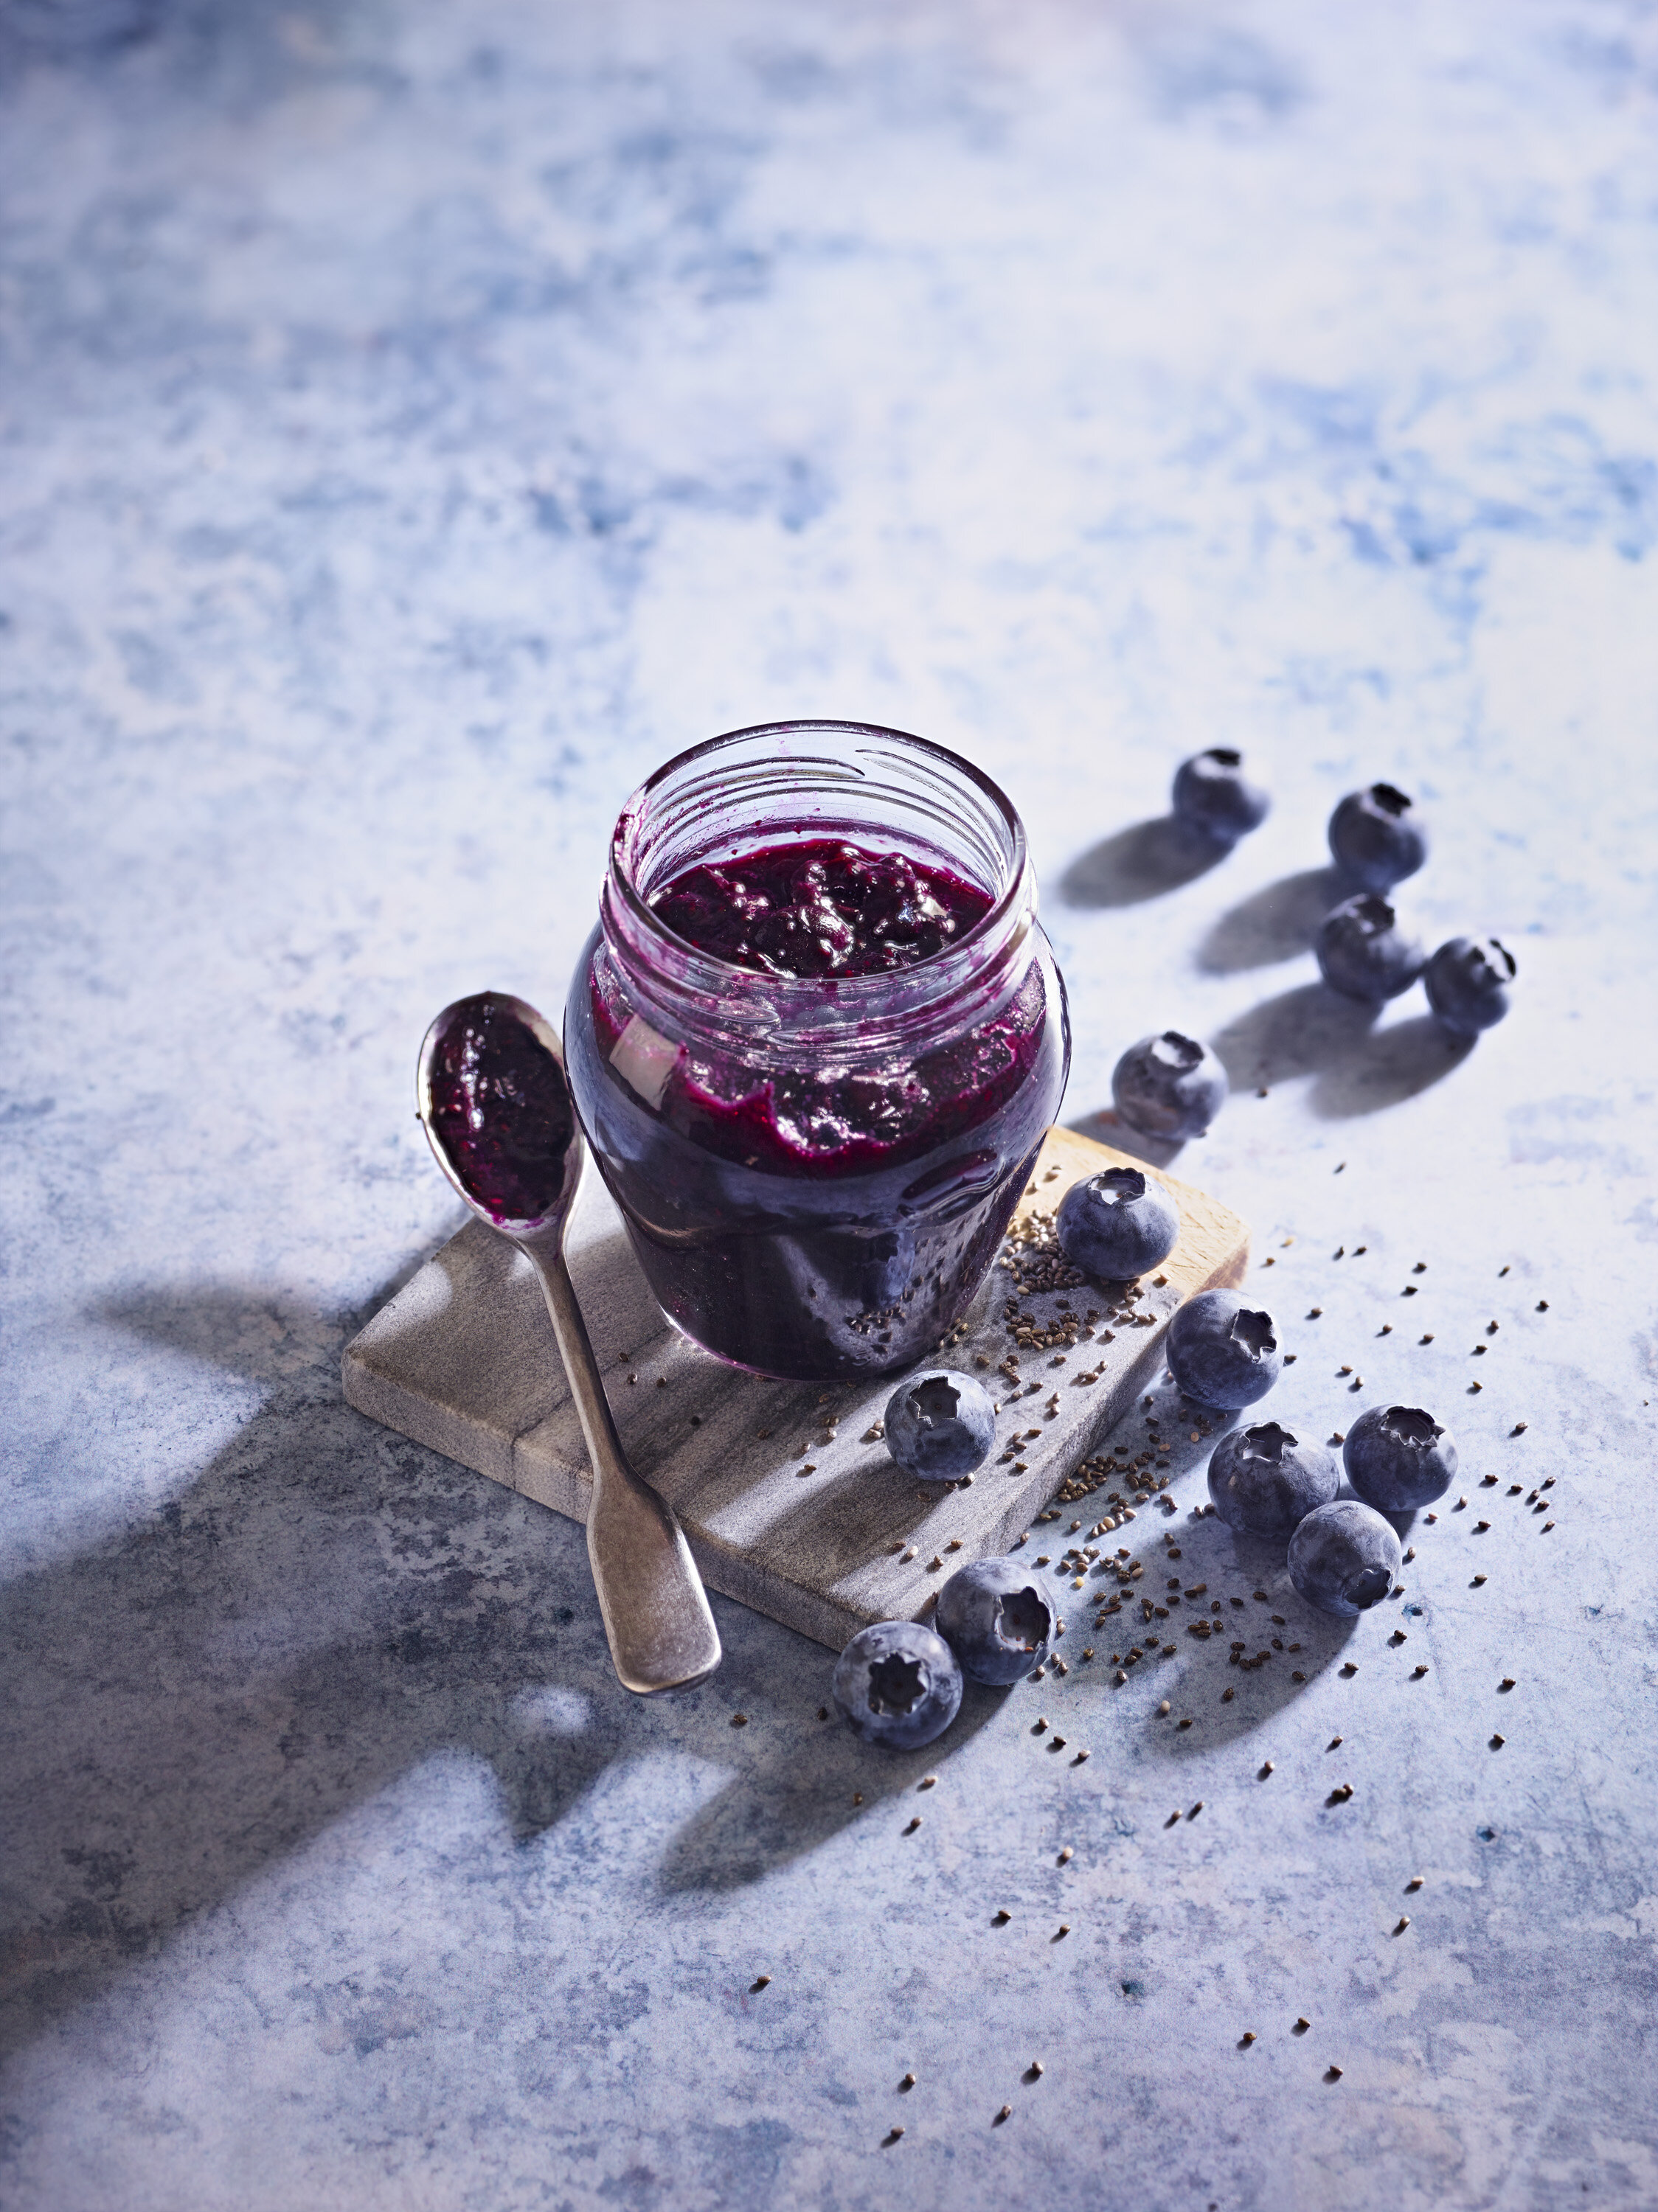 Blueberry Chia Seed Jam for Soloberry from The Medicinal Chef